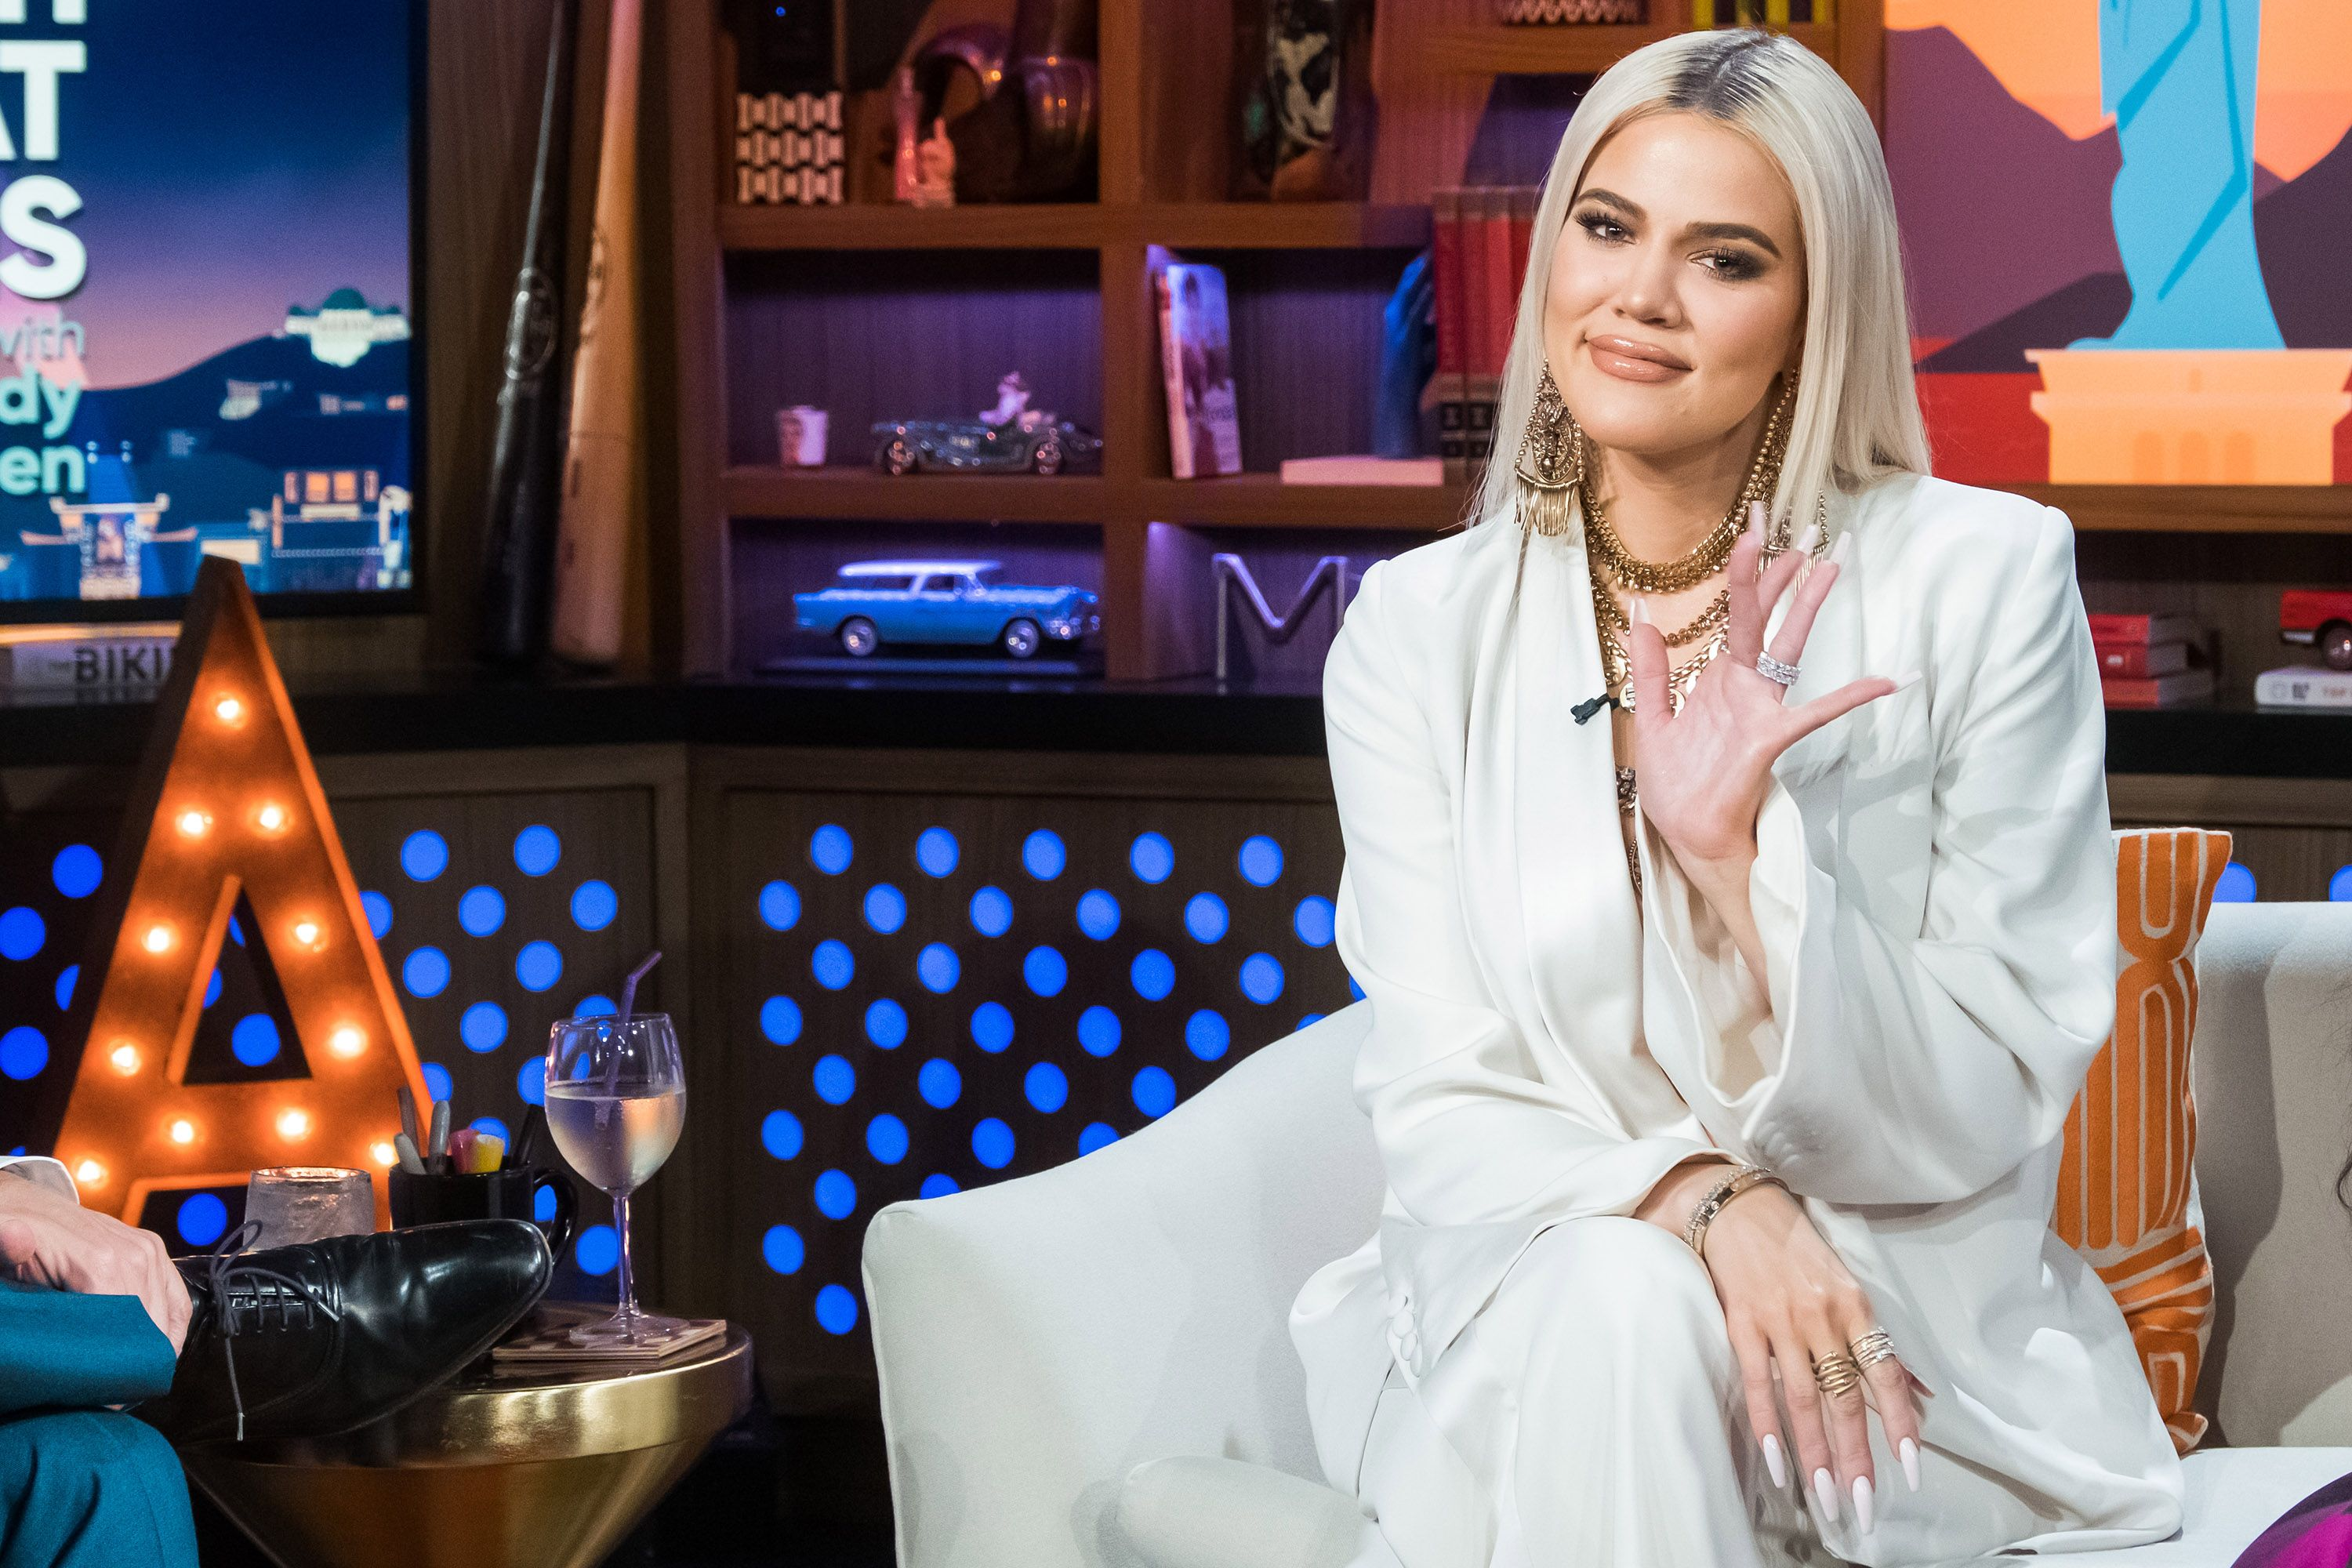 All the Hints That Khloe Kardashian Was Blindsided by the Jordyn Woods Cheating Scandal